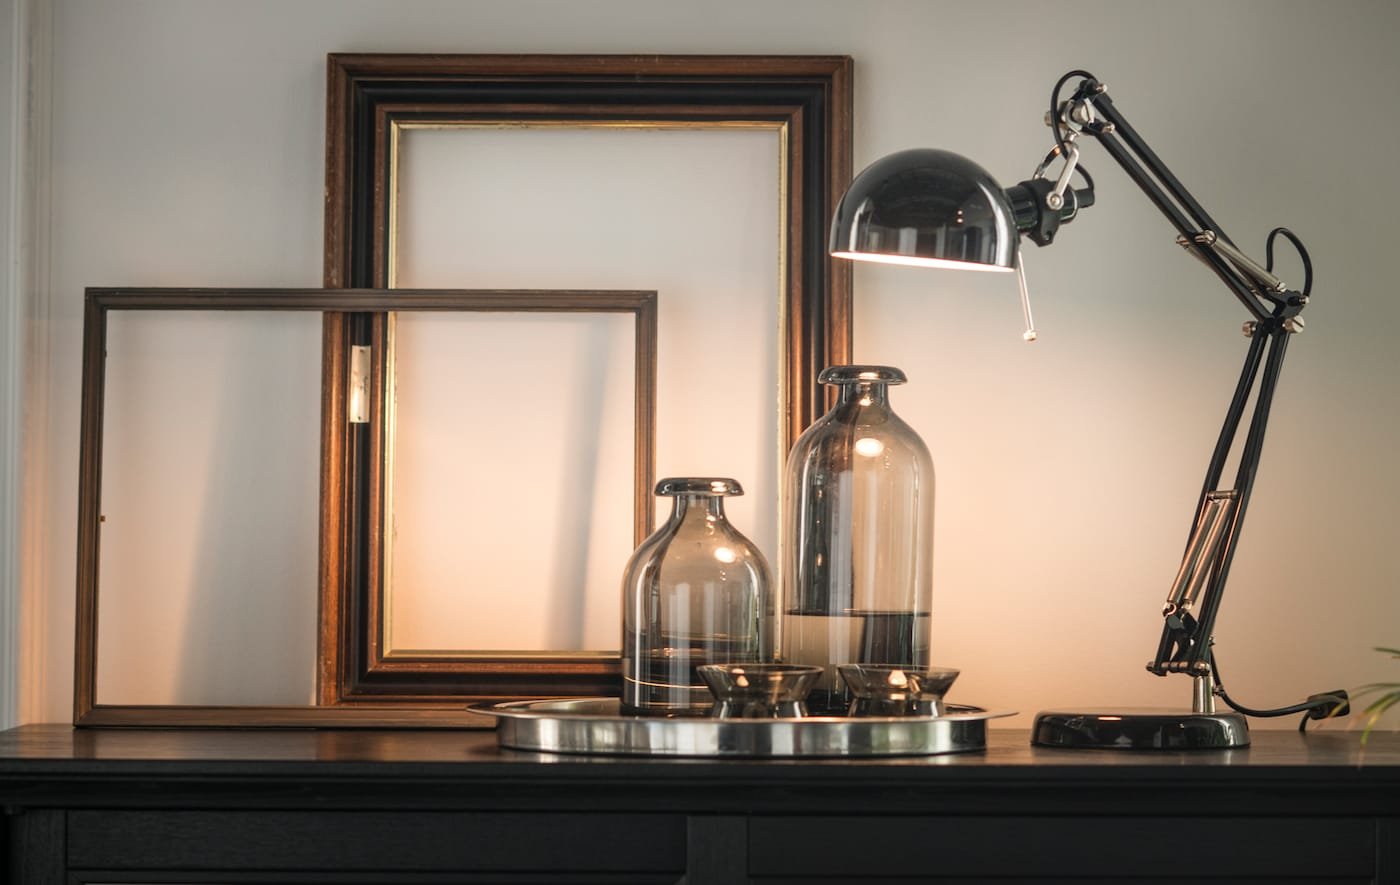 A metallic lamp, glass bottles, and empty frames arranged on top of a black cabinet.